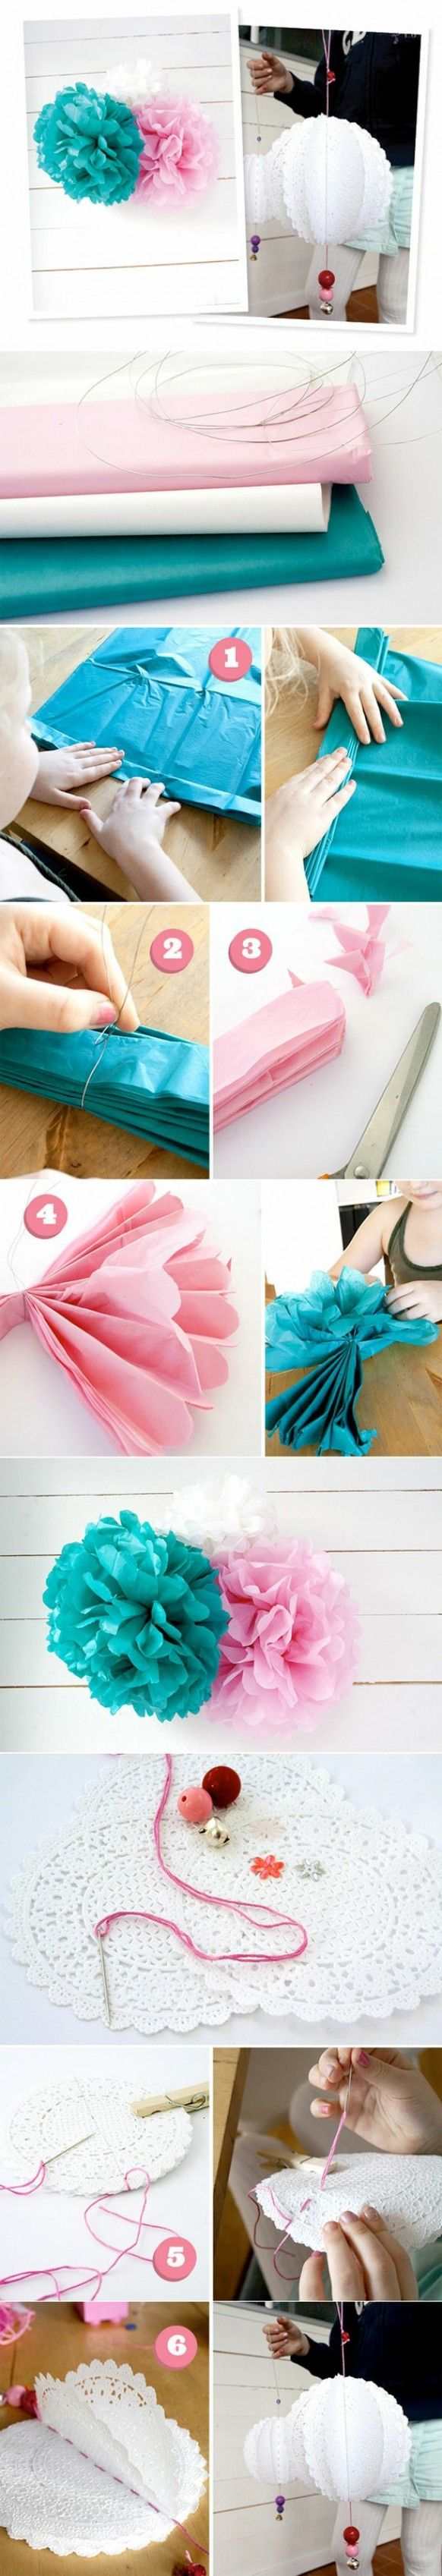 how to make pom poms from plastic tablecloths